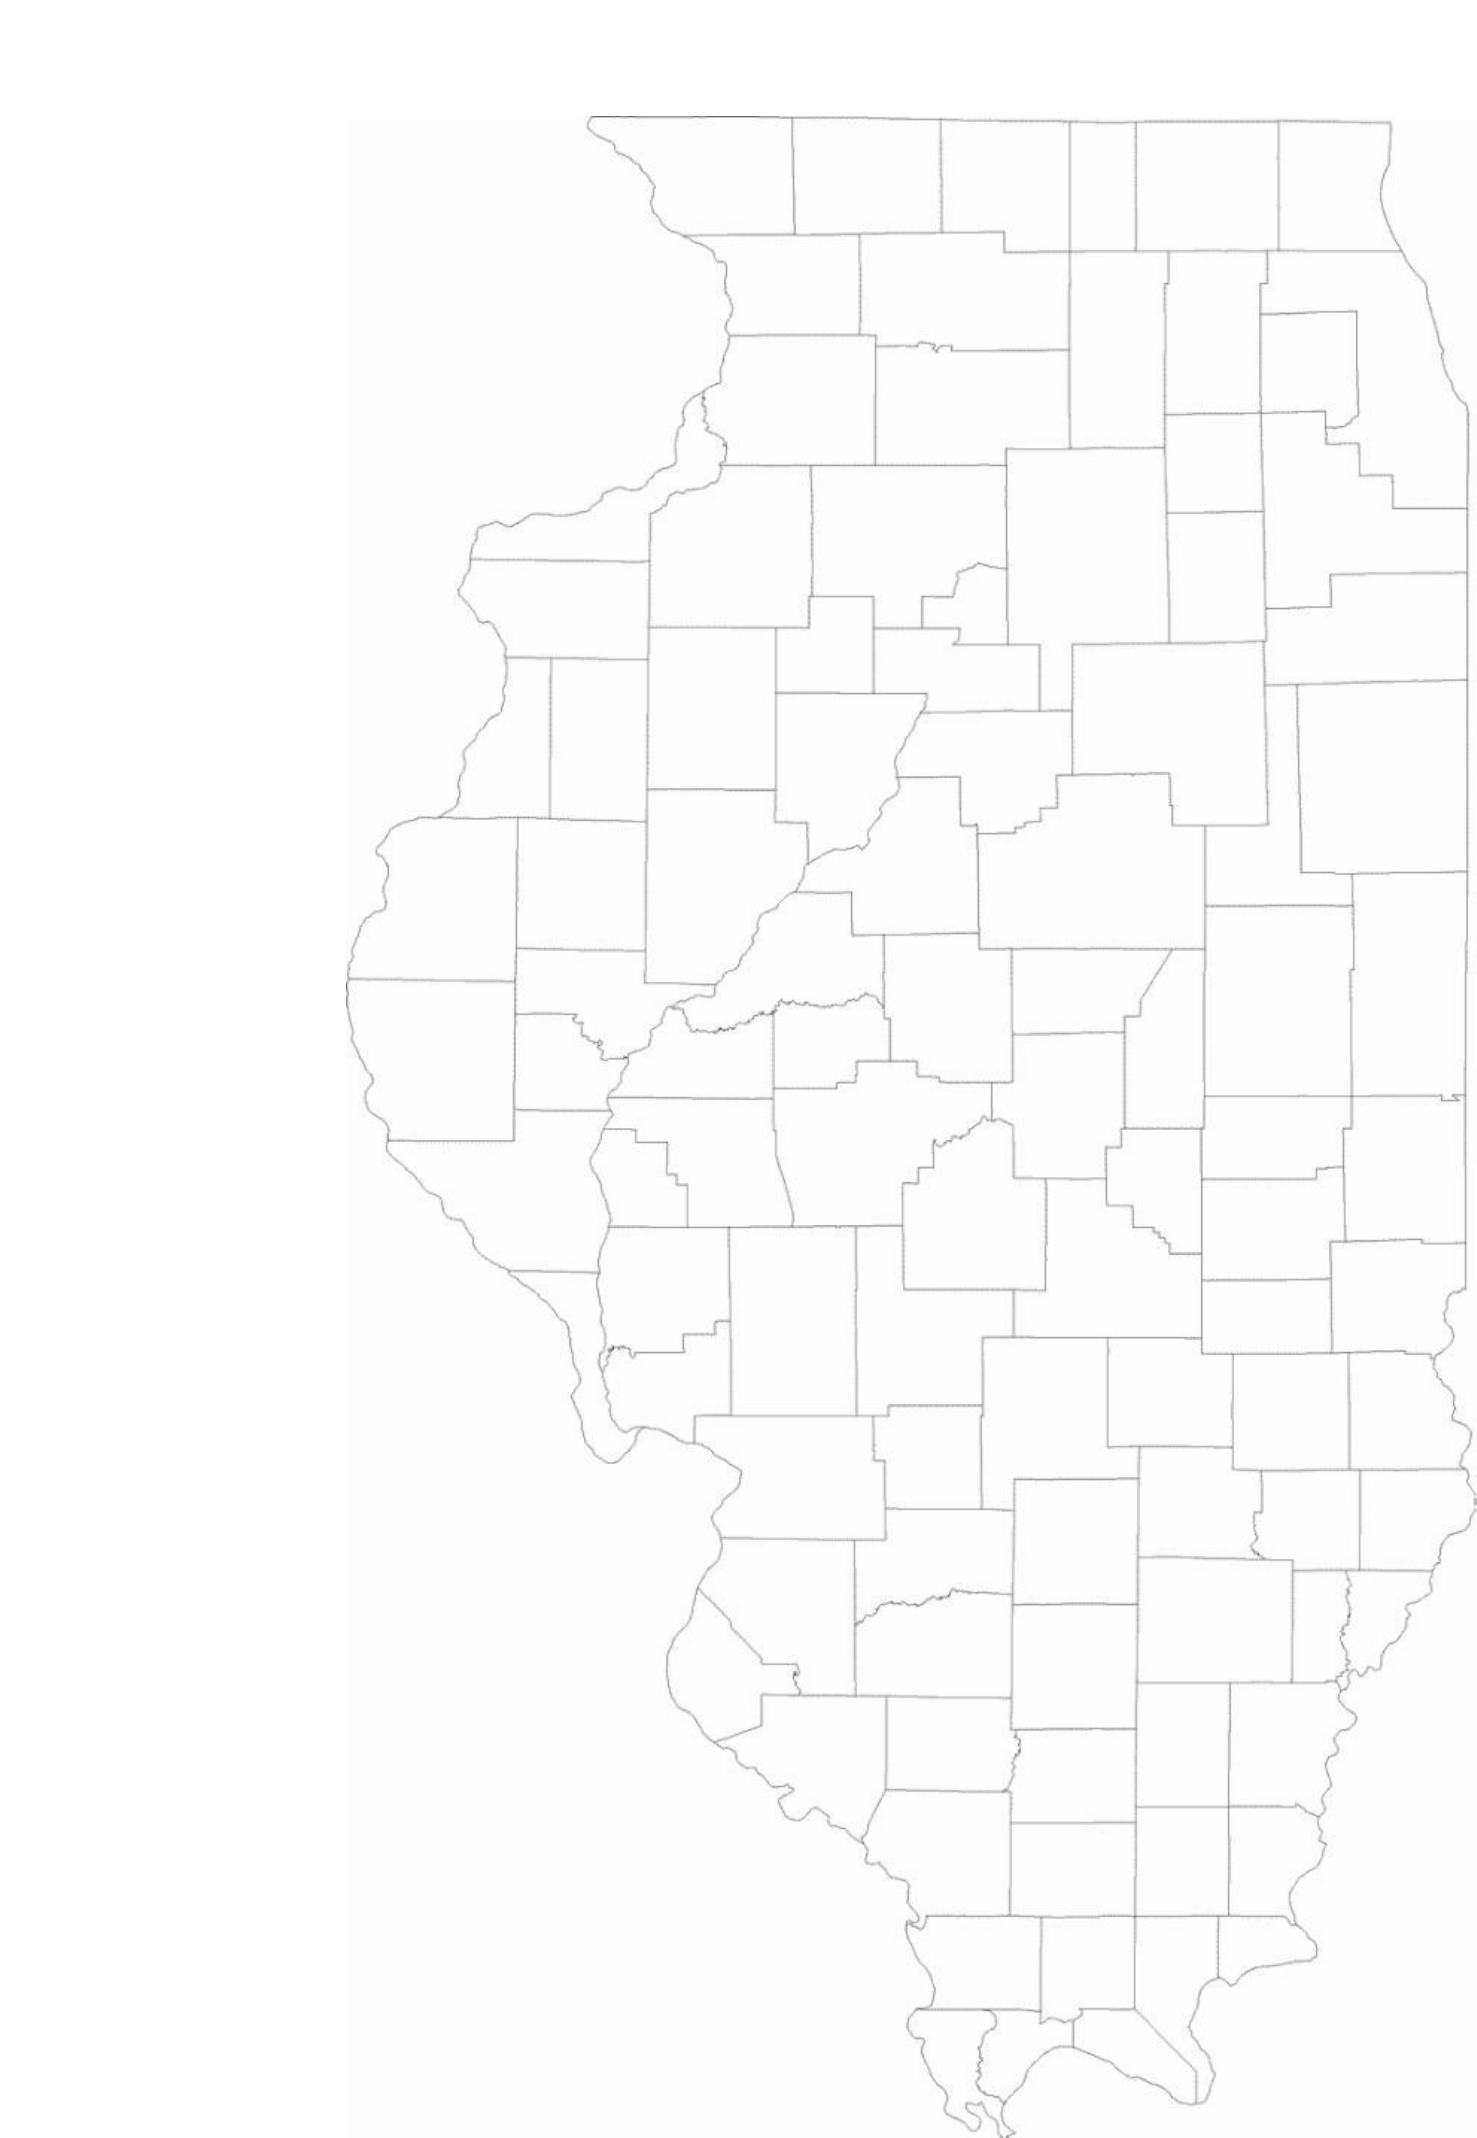 blank illinois county map free download